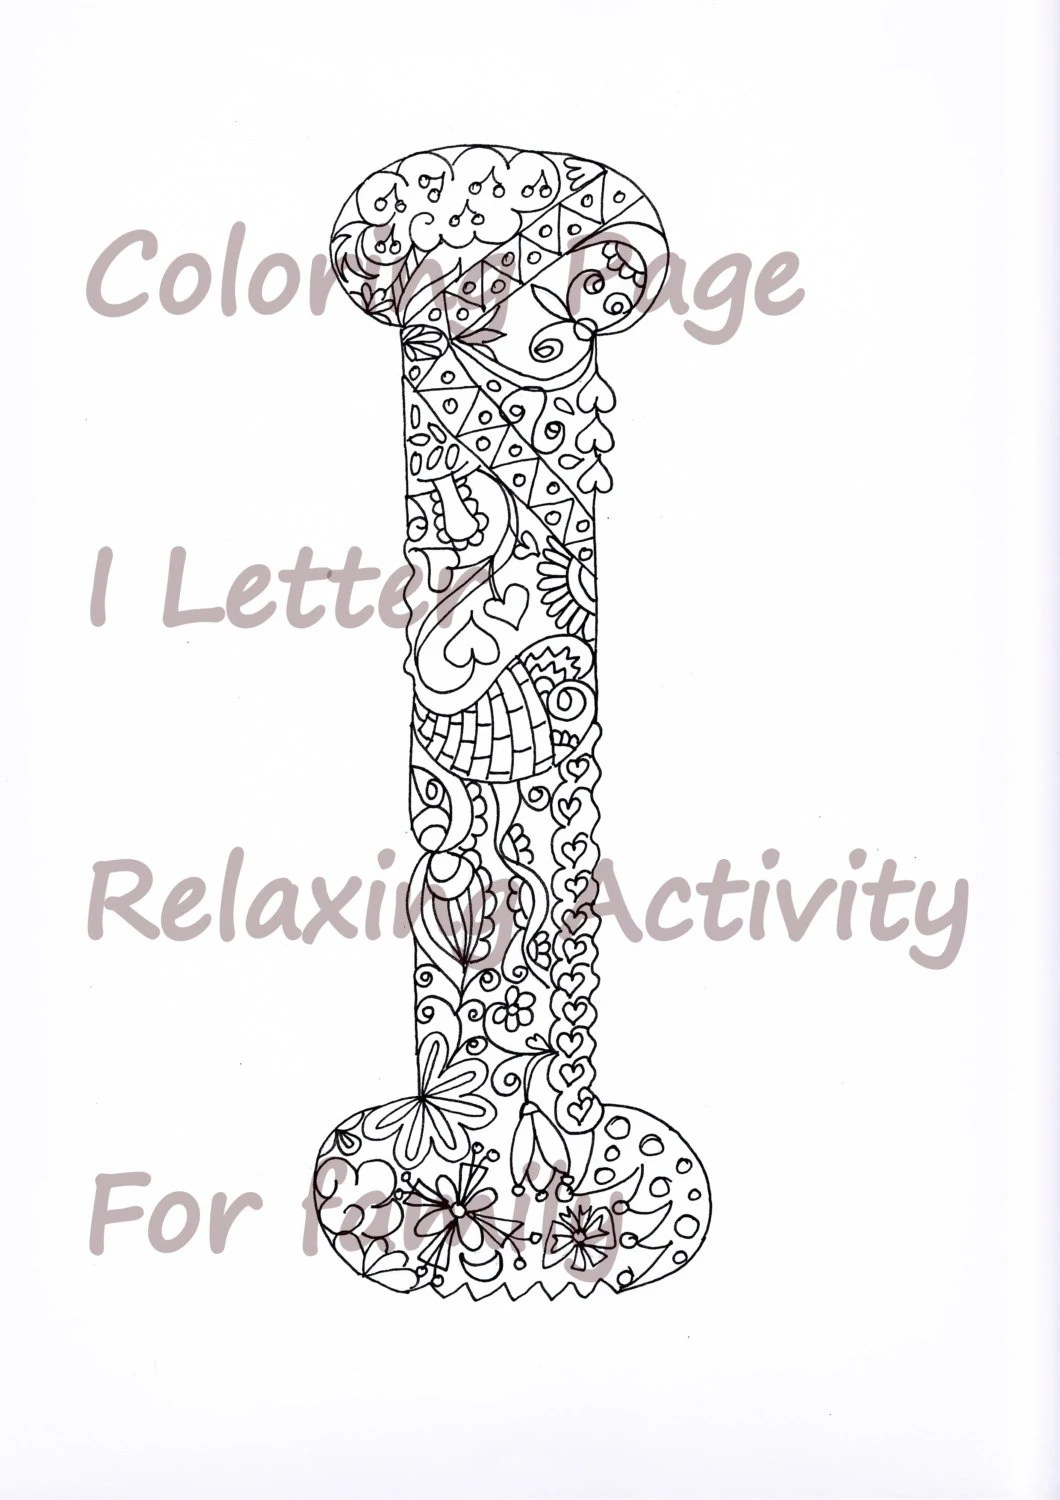 Letter I Colouring Page, Zentangle Art Inspired, Adults